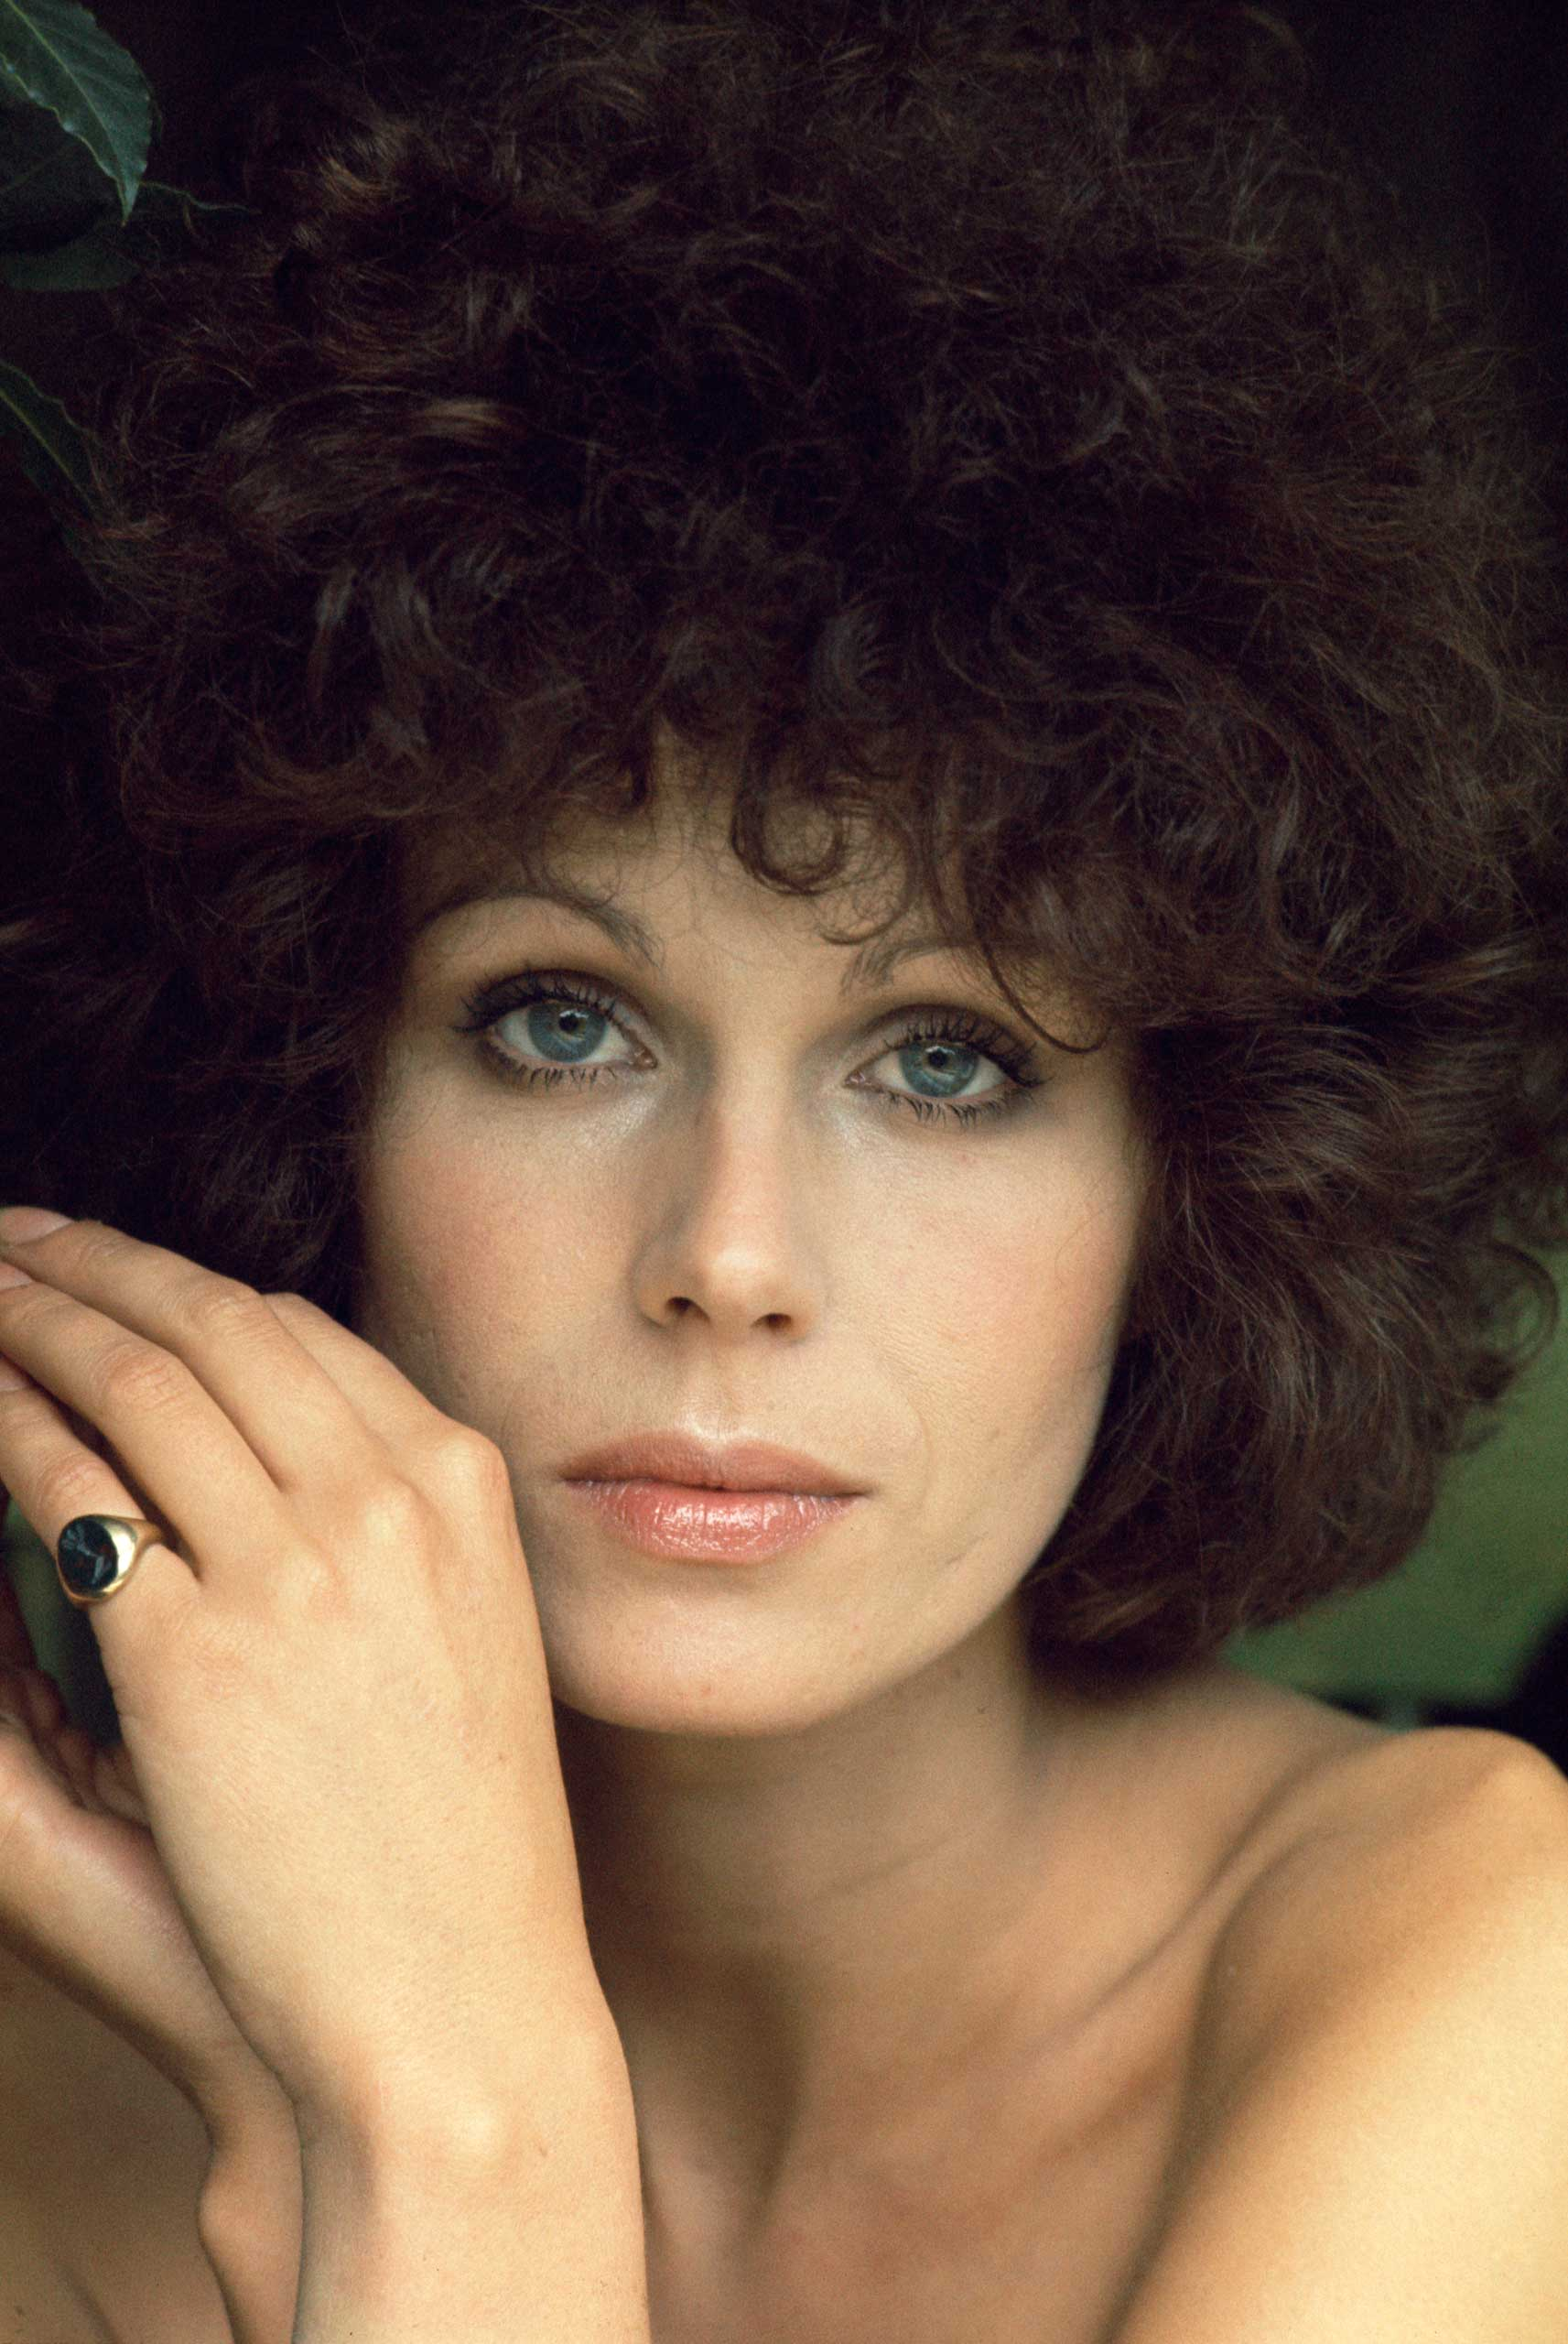 <b>Joanna Lumley</b>Photographed for TV Times in 1976                                   Only months later, she'd instruct a hairdresser to cut and colour her hair 'like a prep schoolboy', thus creating <i>The New Avengers</i> blonde Purdey bob that would cause a copycat frenzy at salons nationwide.